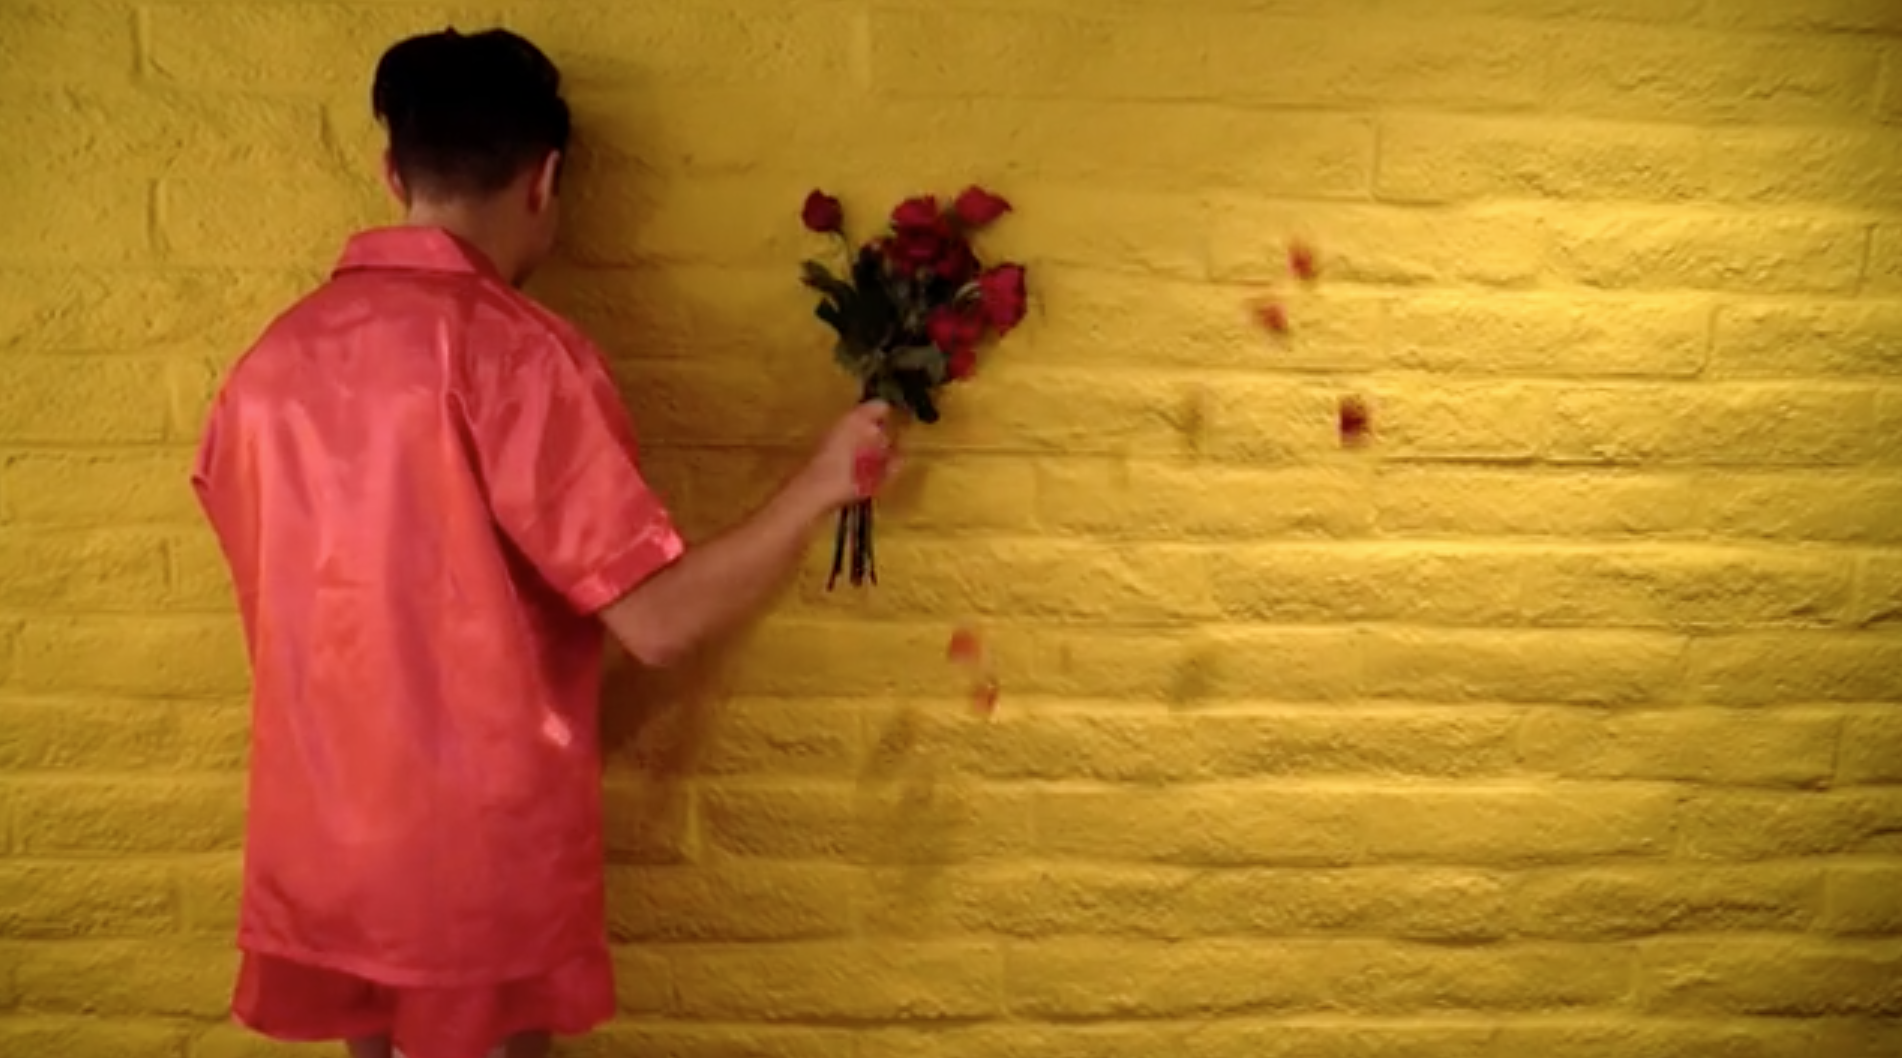 a  figure in a red shirt faces a yellow wall and holds a bouquet against the wall